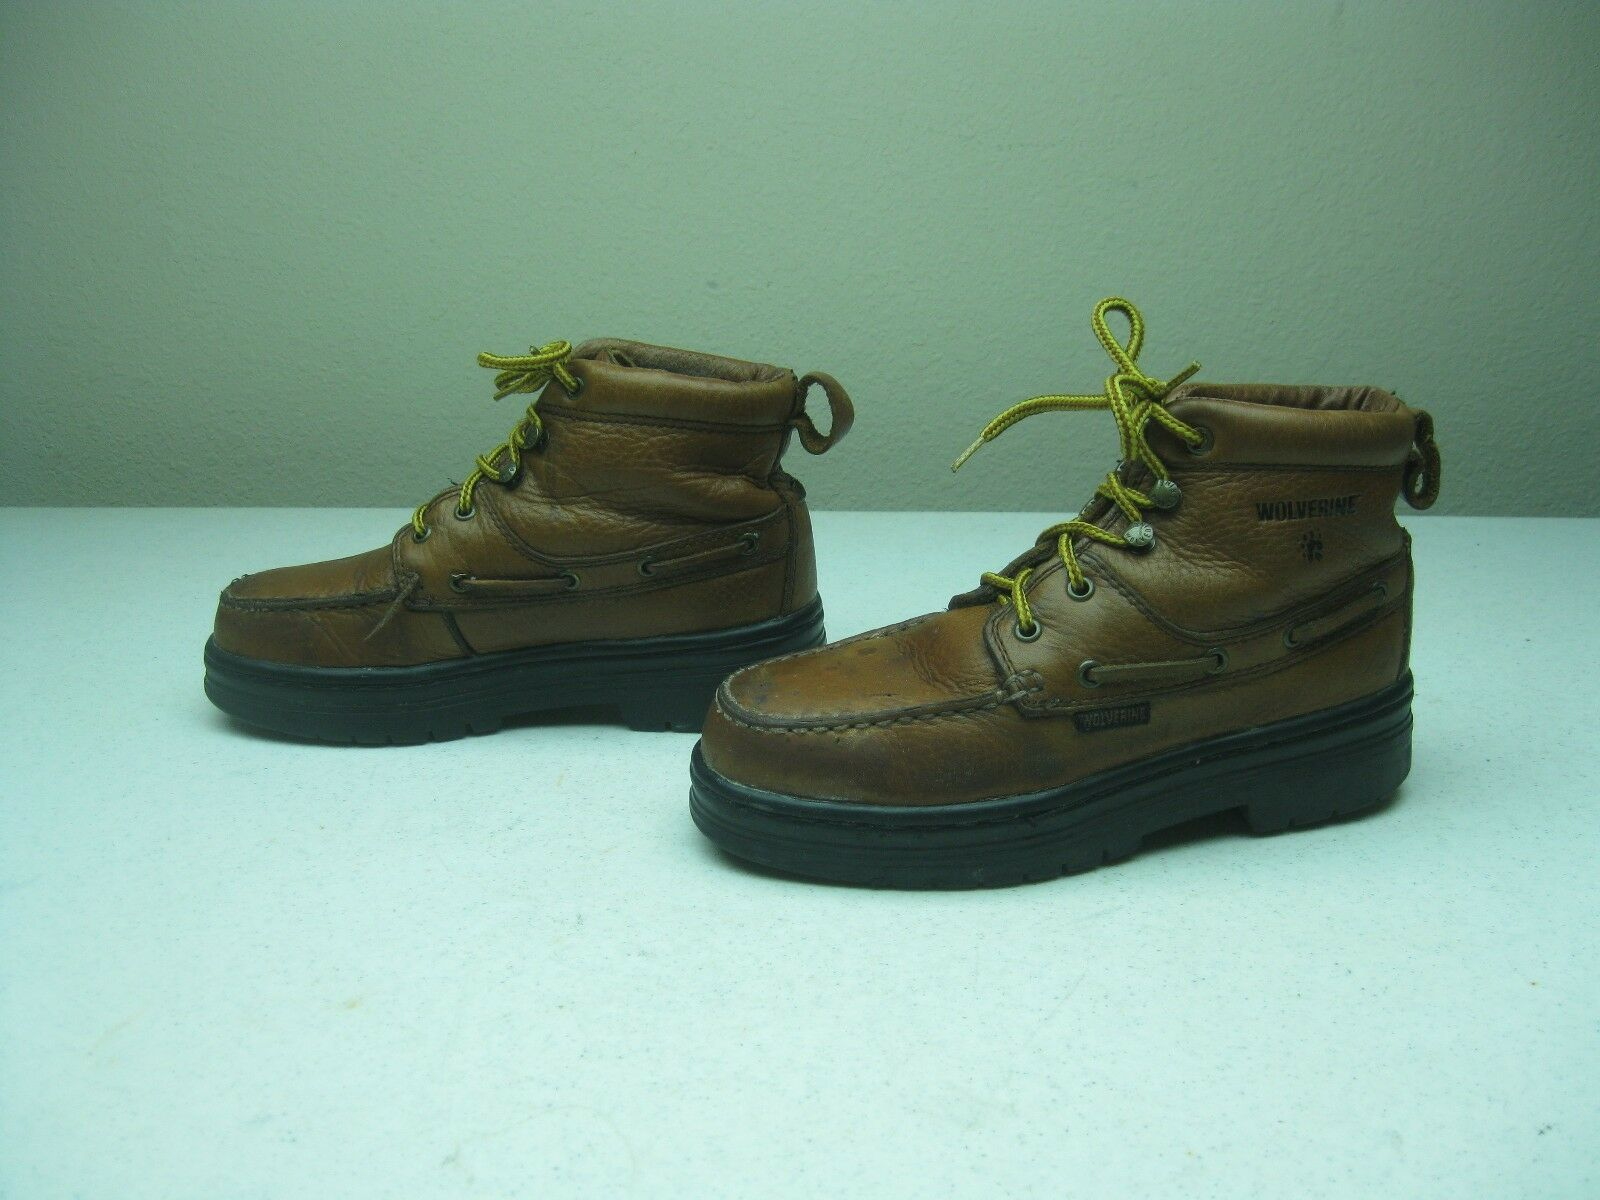 BROWN DISTRESSED STEEL TOE WOLVERINE LACE UP WORK CHORE BOOTS SZE 6 M